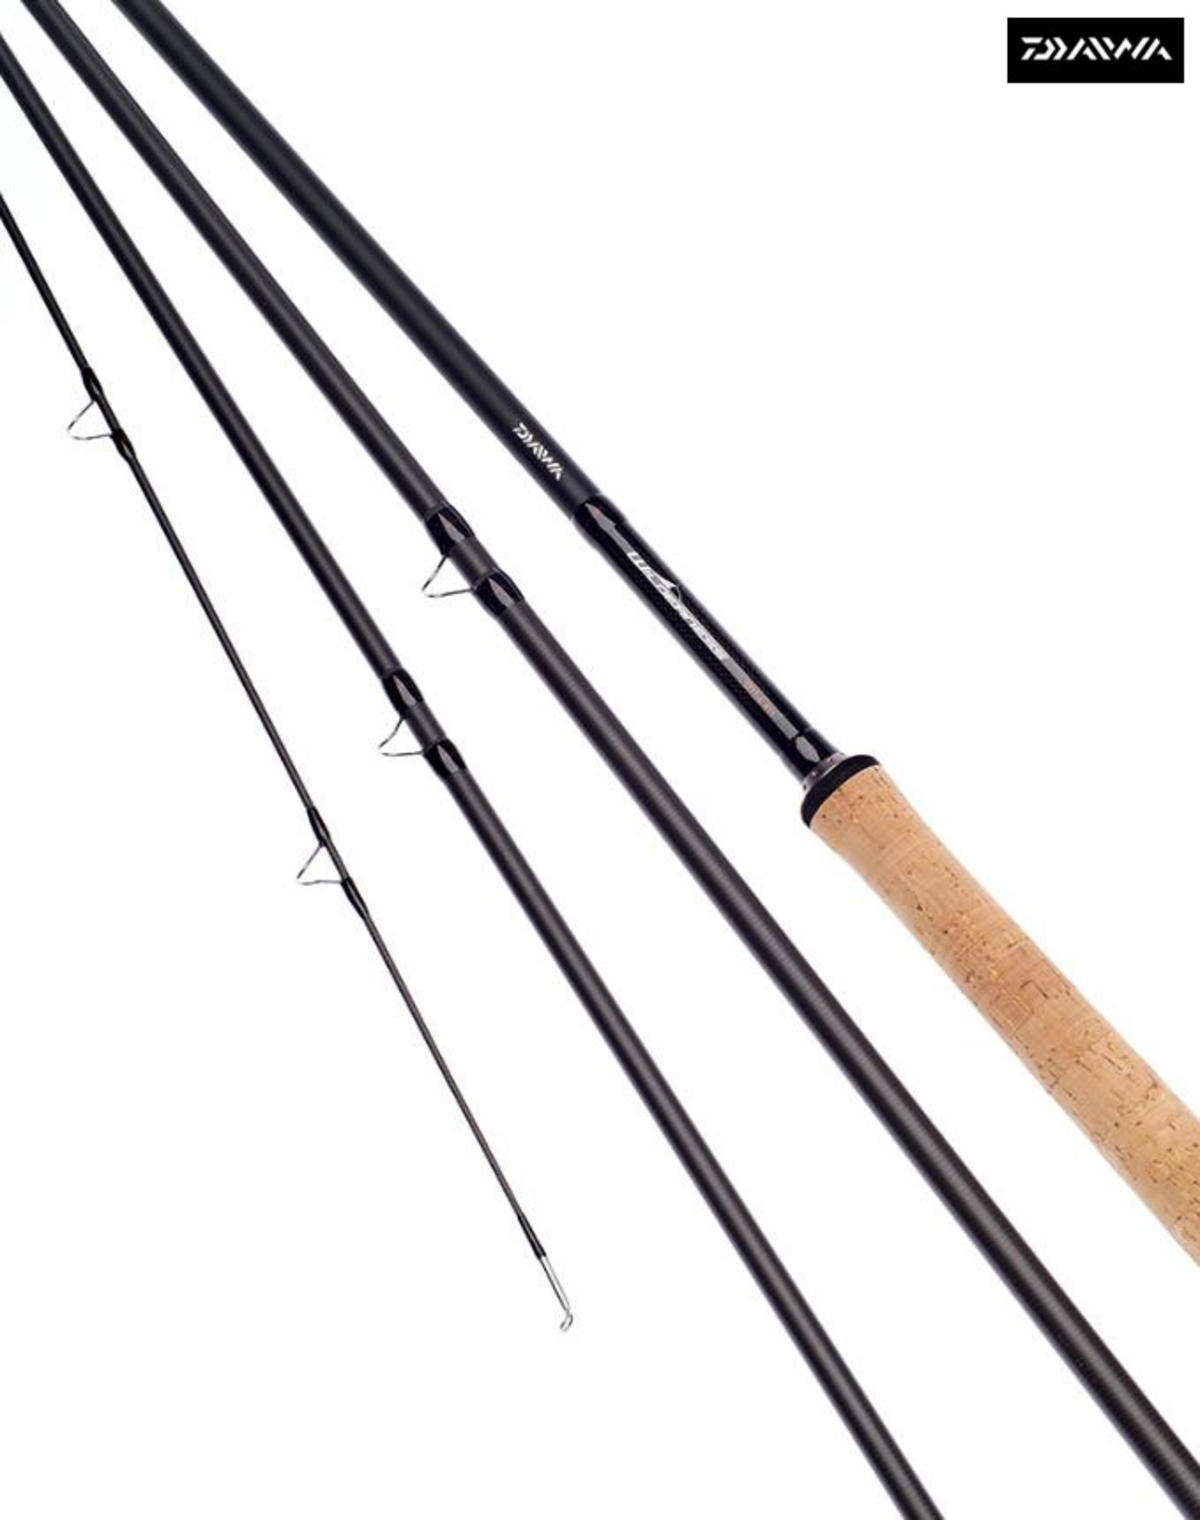 New Daiwa Wilderness Salmon Fly Fishing Rods - All Models